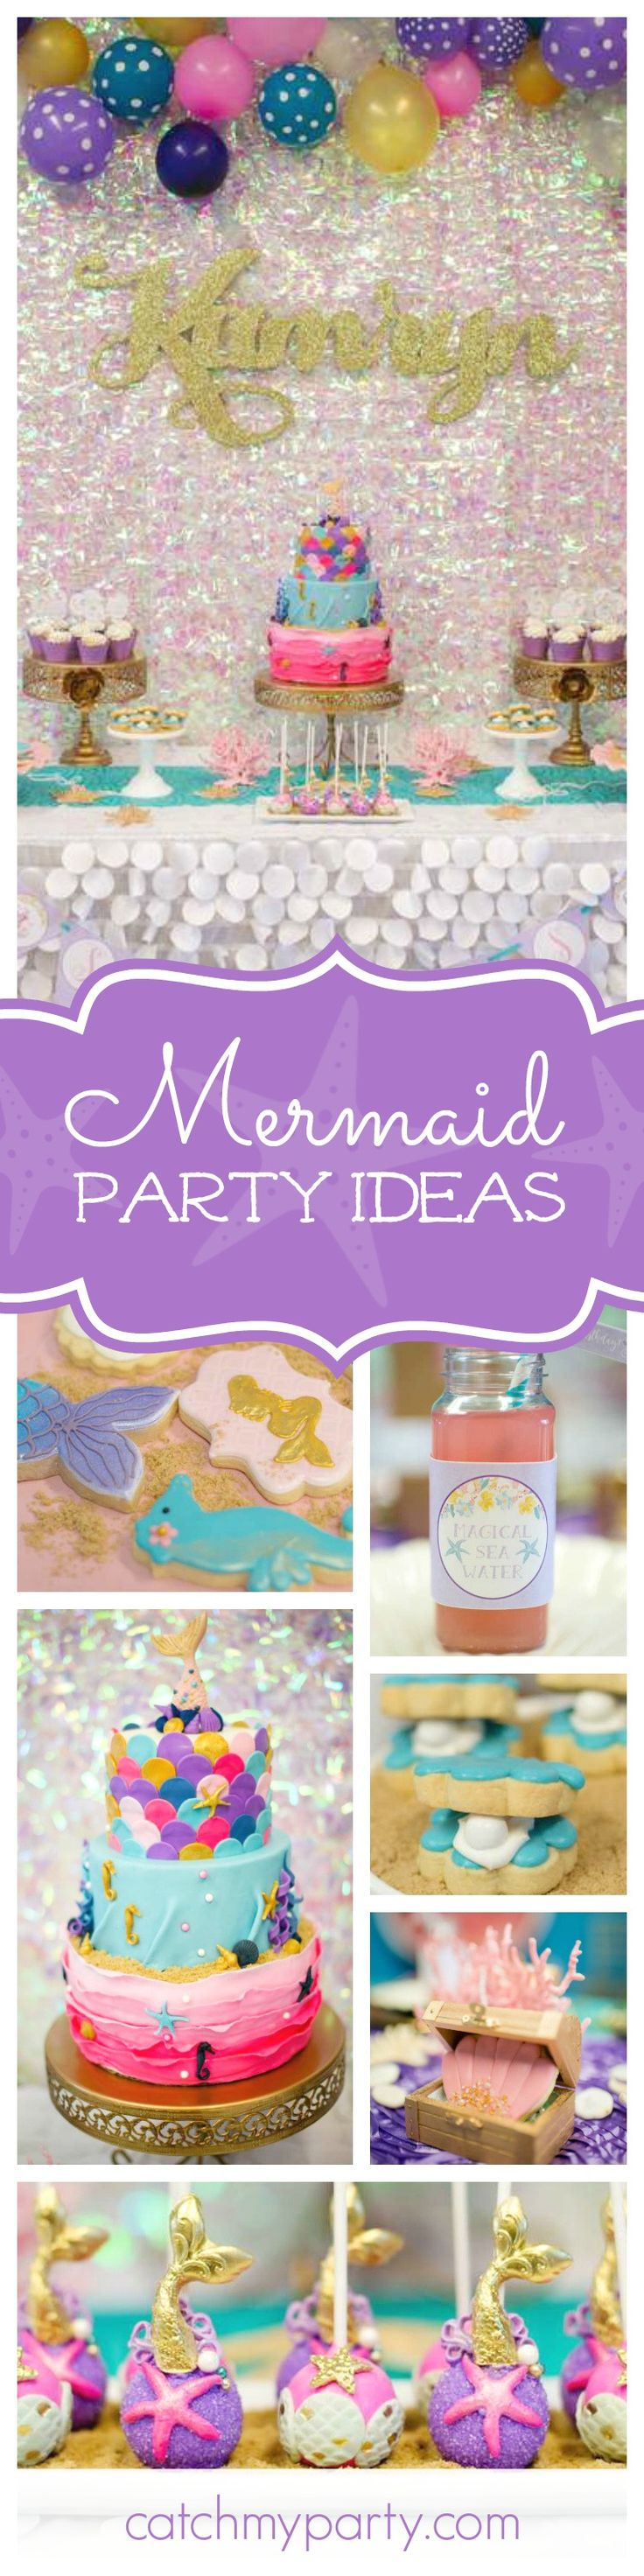 You'll love this magical mermaid birthday party! The cake pops are amazing!! See more party ideas and share yours at CatchMyParty.com